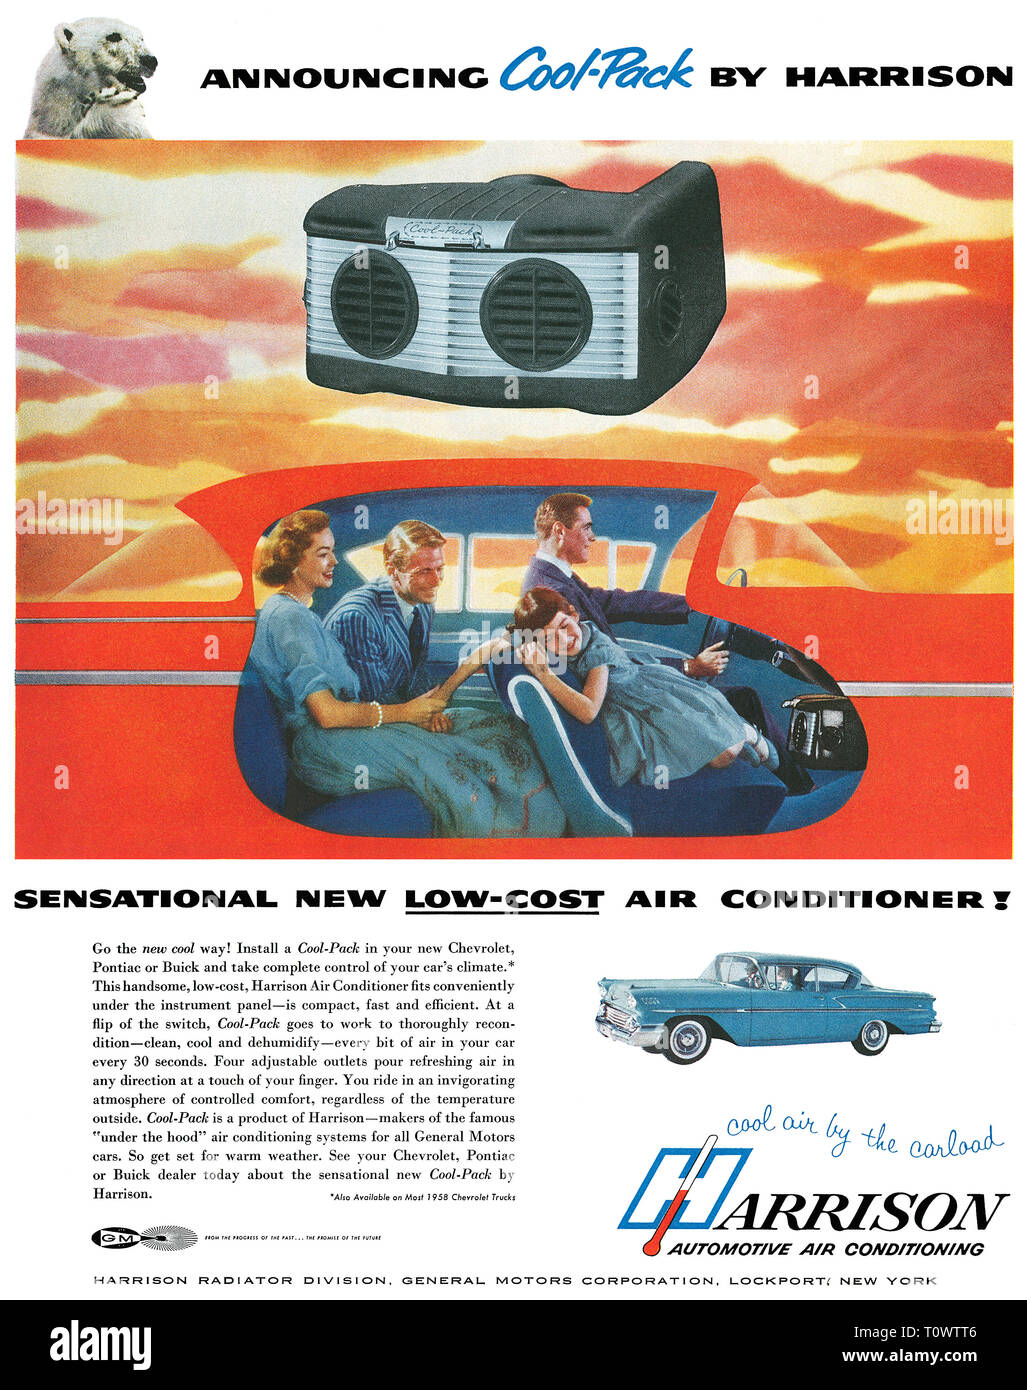 1958 U.S. advertisement for Harrison automotive air conditioning. - Stock Image